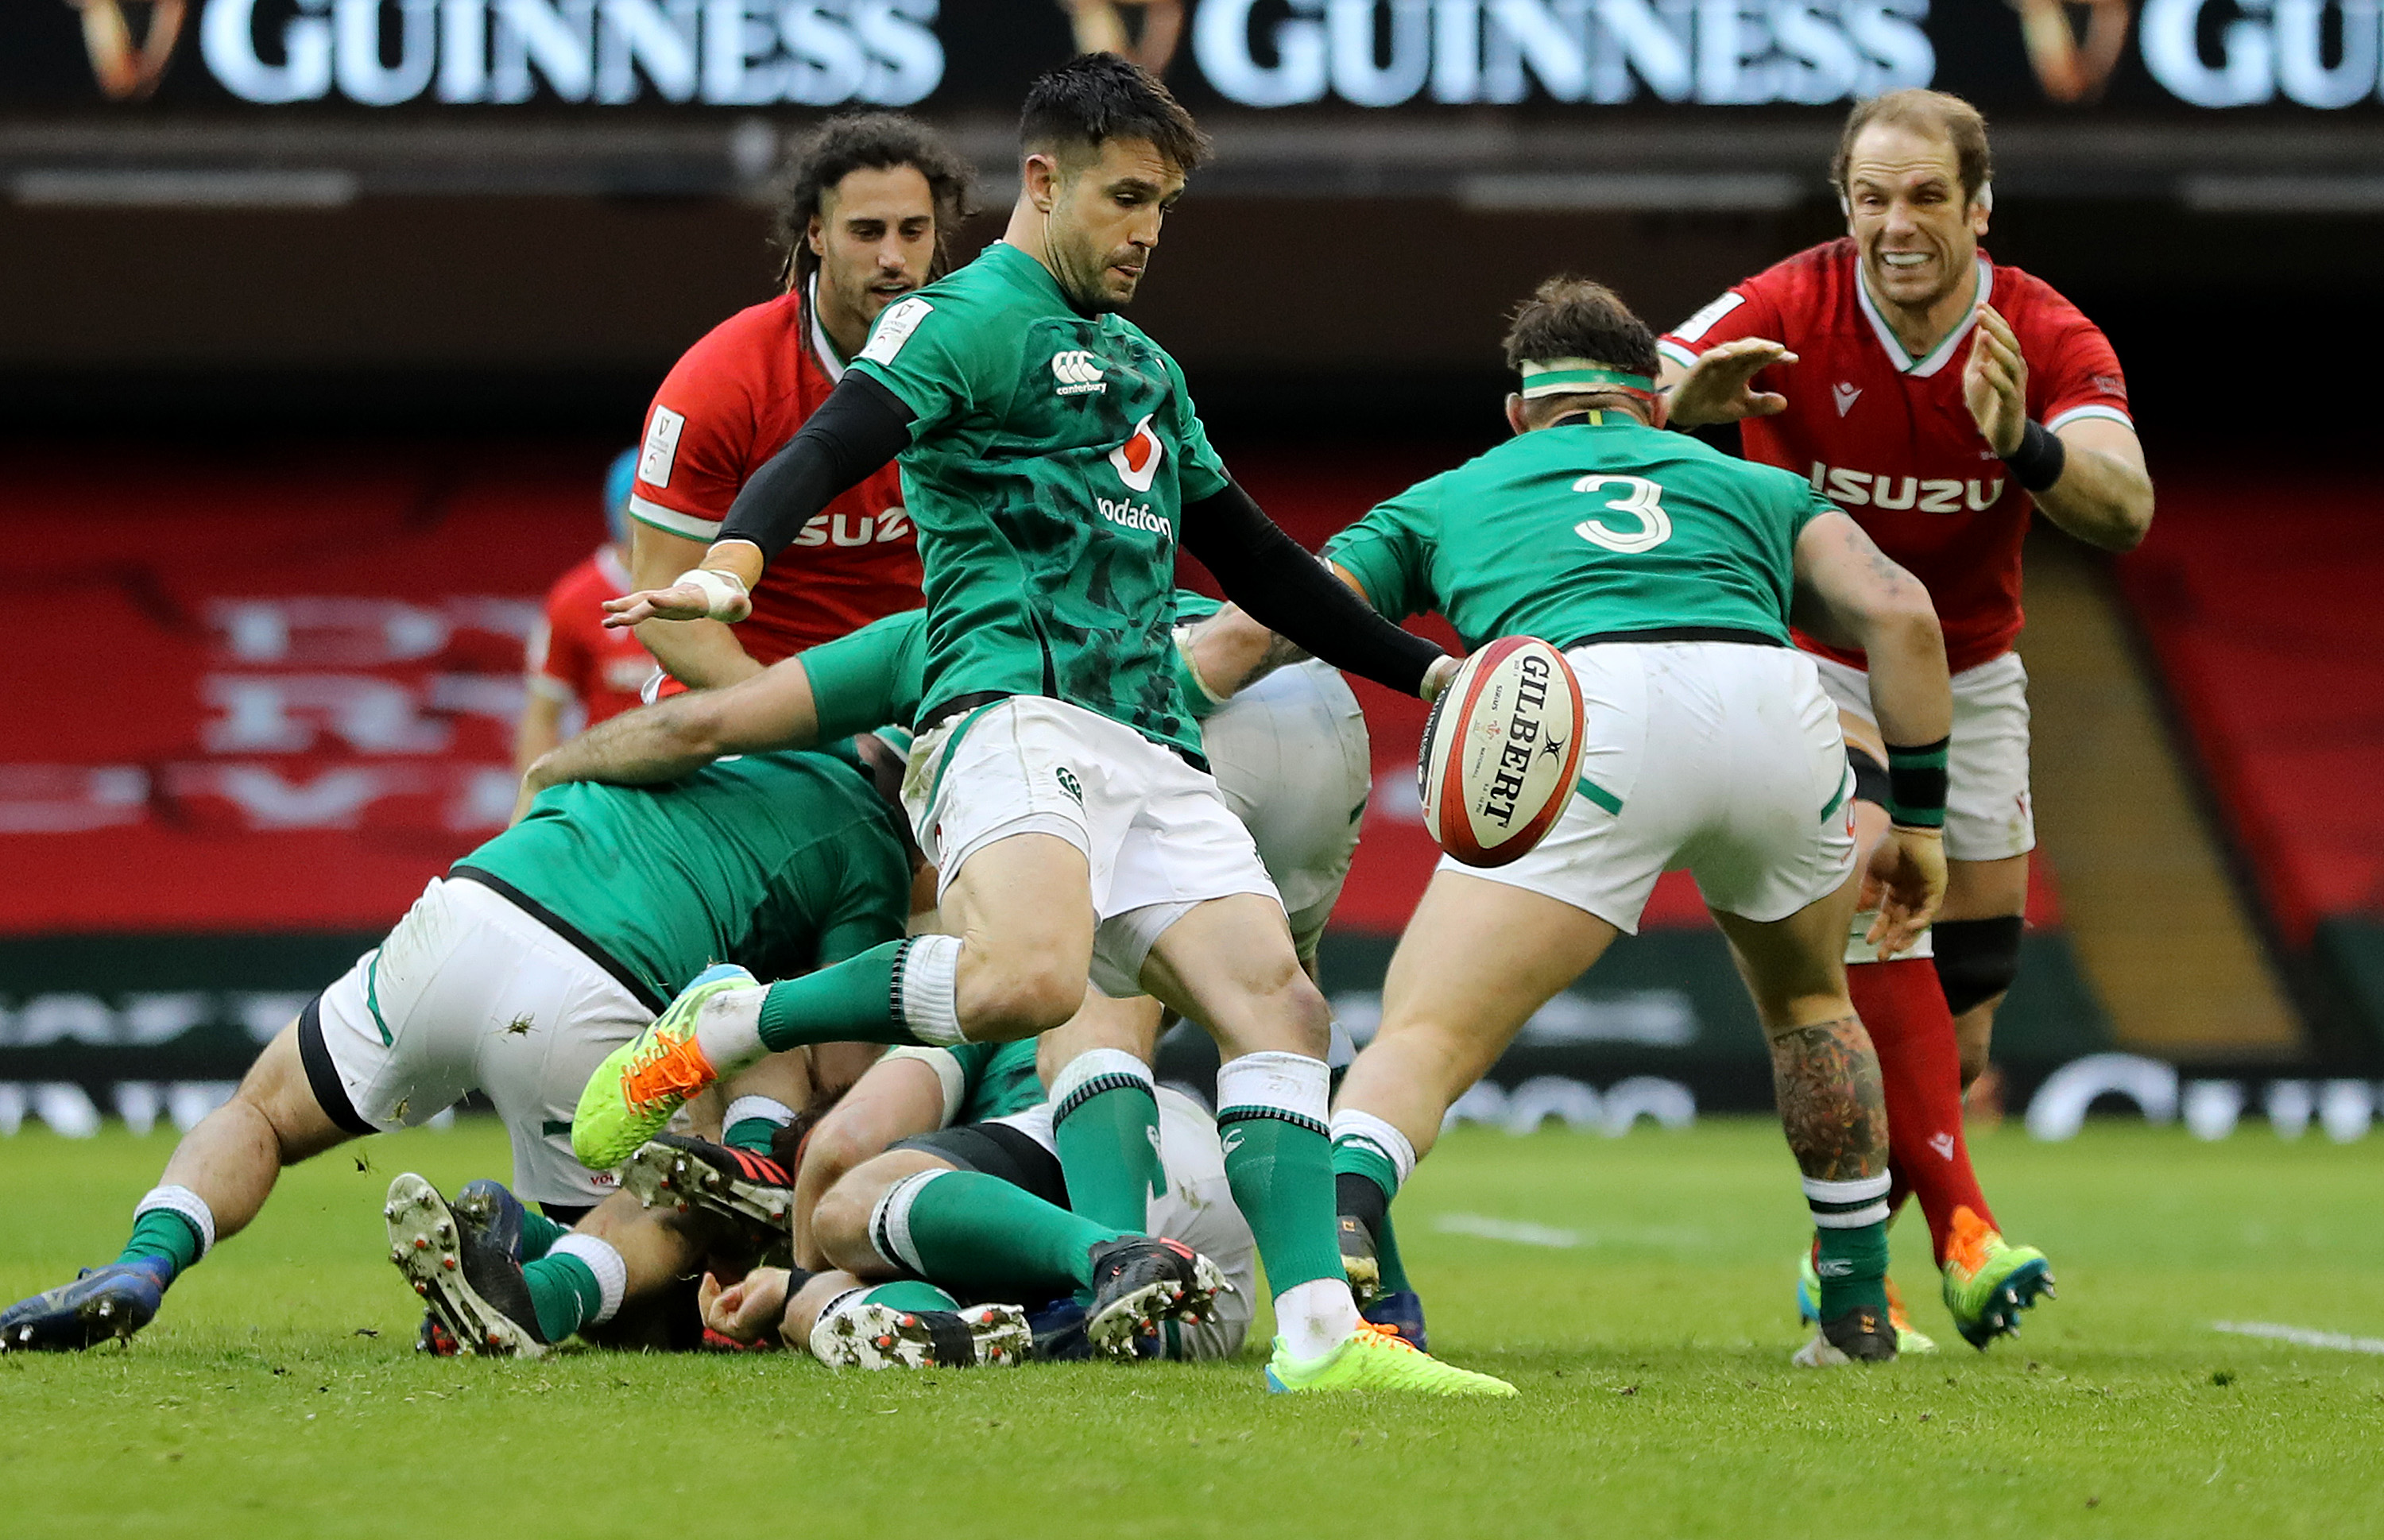 Conor Murray: Ten things you should know about the Ireland scrum-half